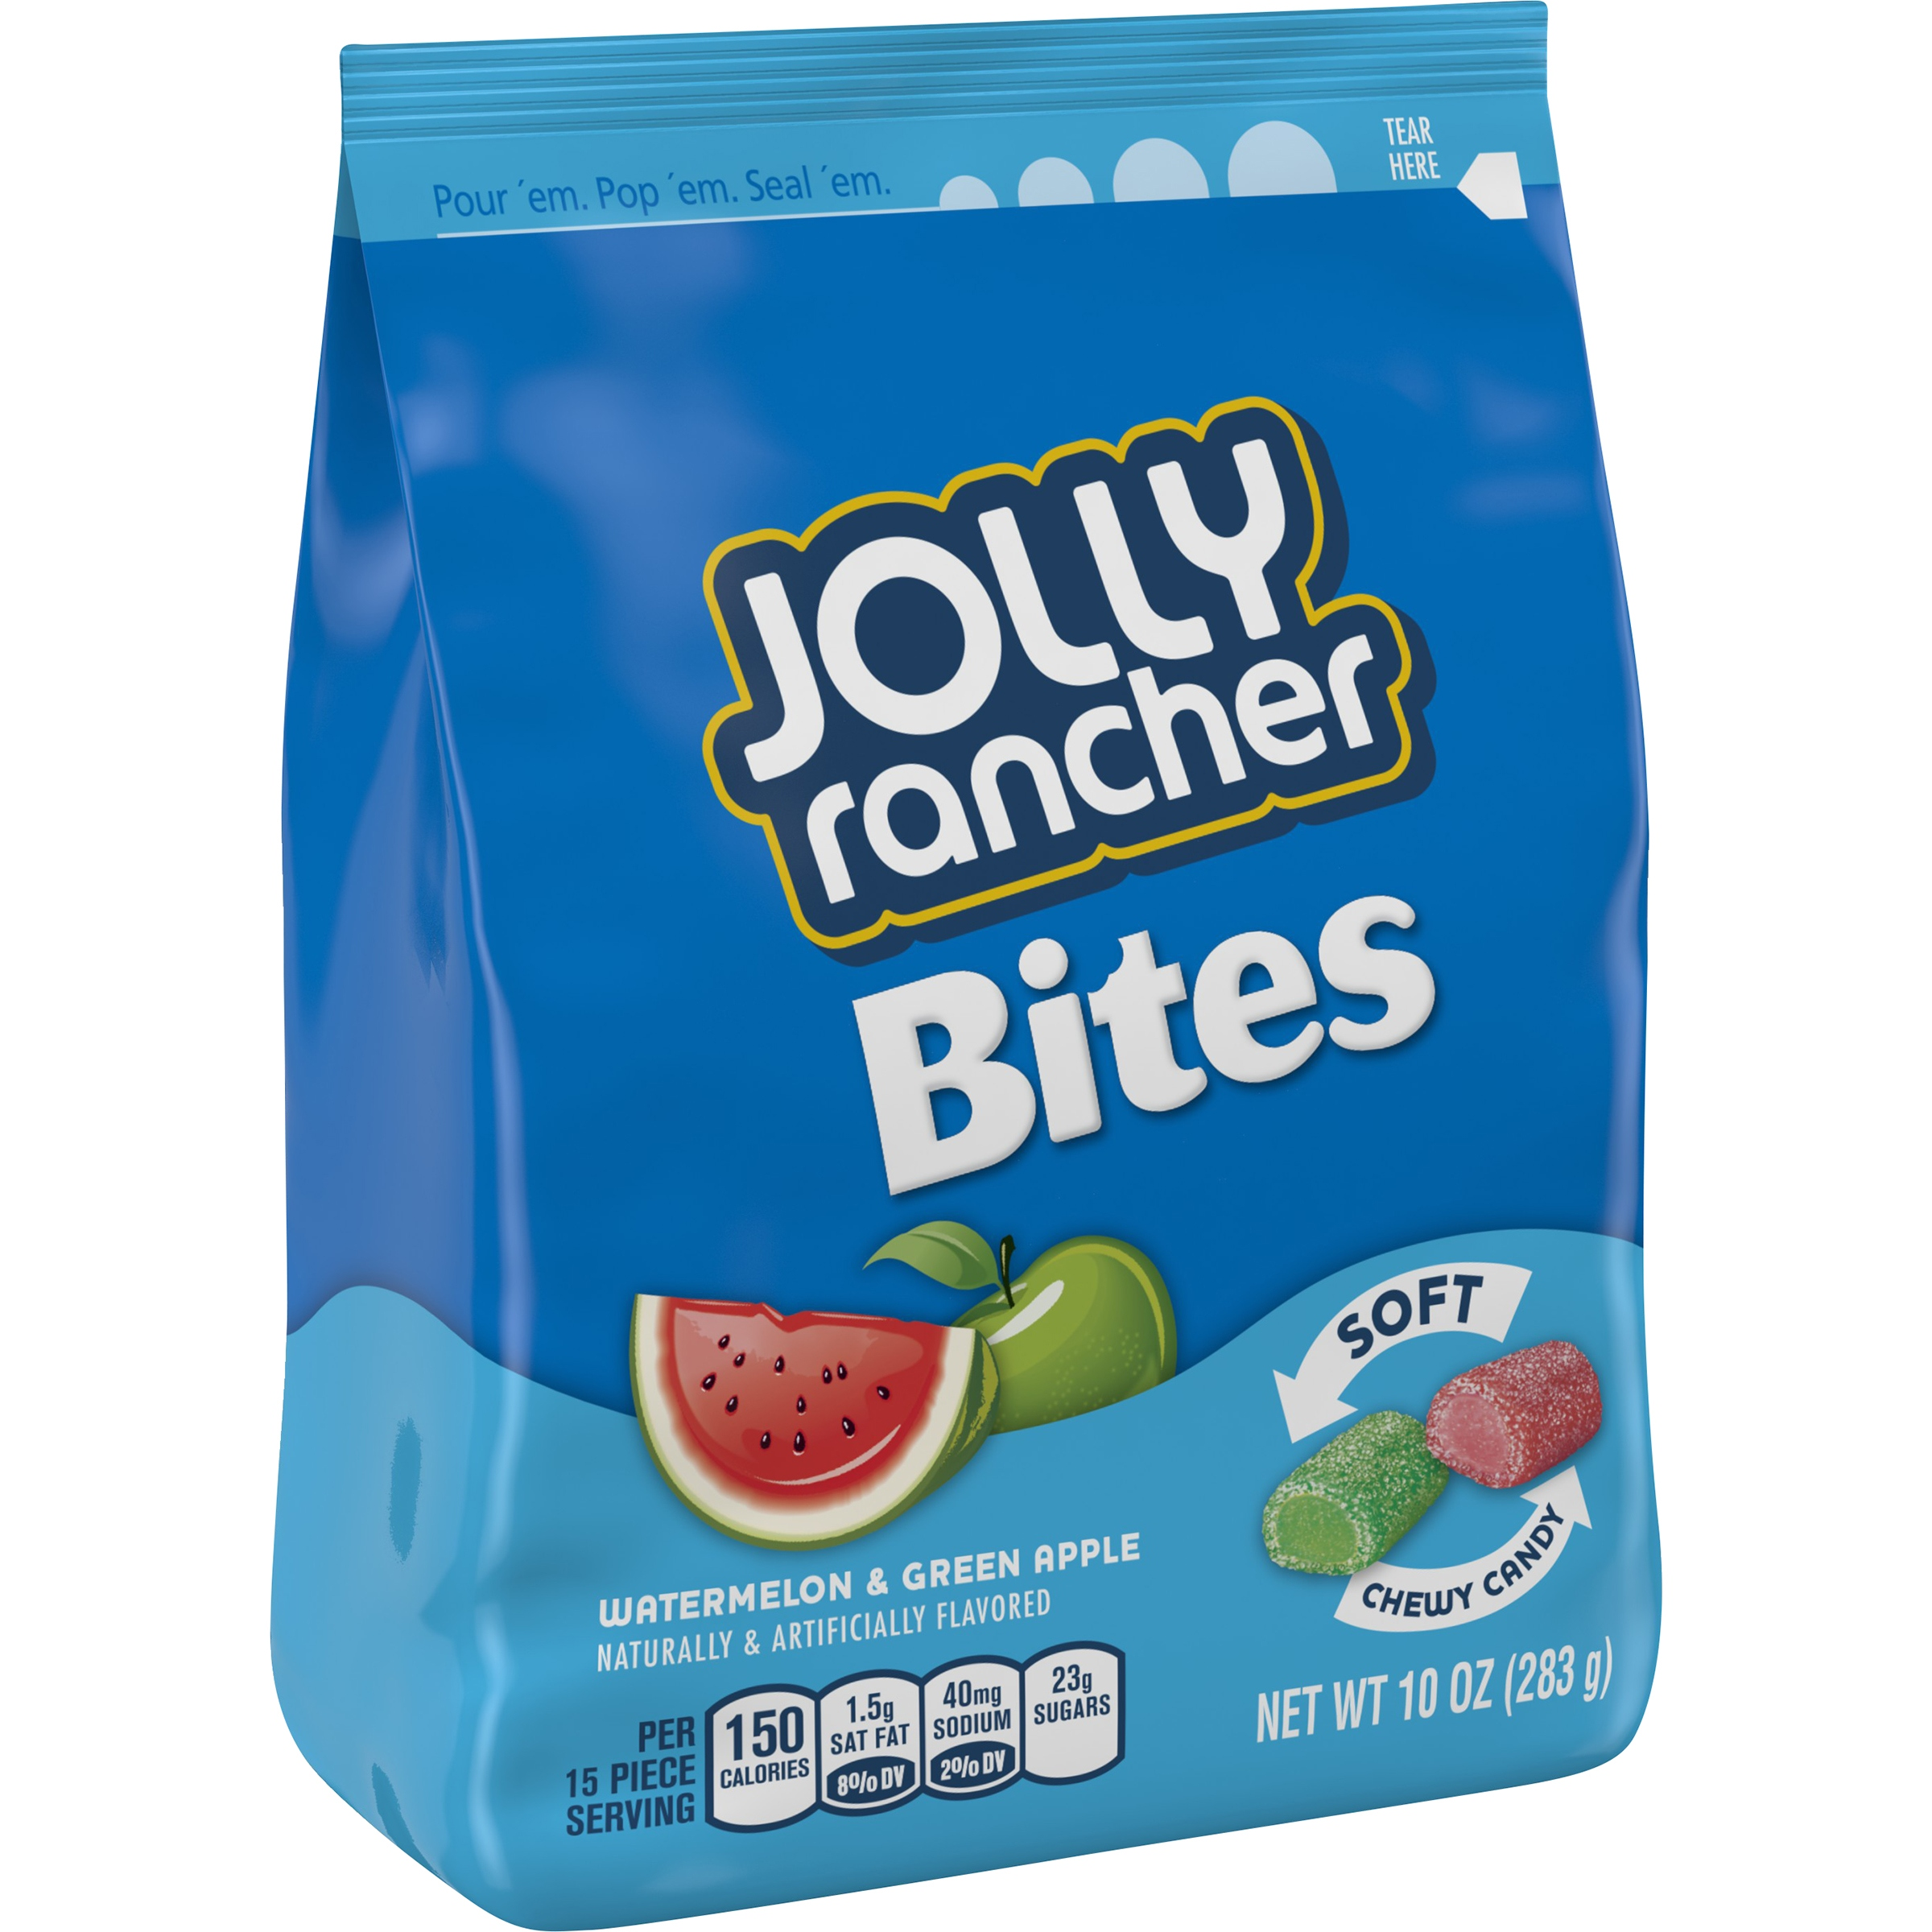 Jolly Rancher Bites Watermelon & Green Apple Soft Chewy Candy, 10 oz by The Hershey Company